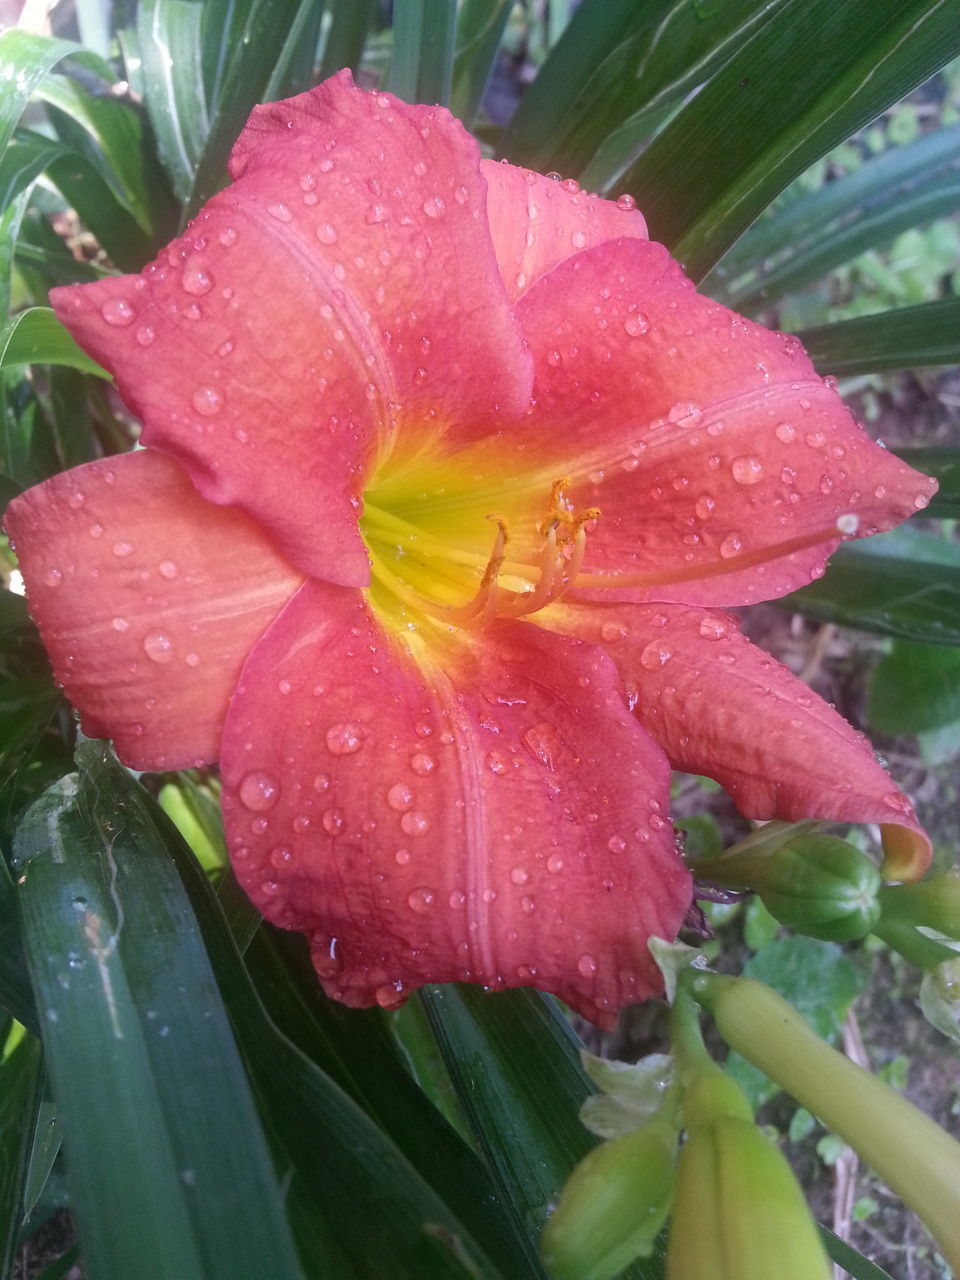 drop, water, wet, growth, flower, petal, flower head, fragility, freshness, raindrop, beauty in nature, nature, plant, leaf, close-up, no people, day, outdoors, day lily, blooming